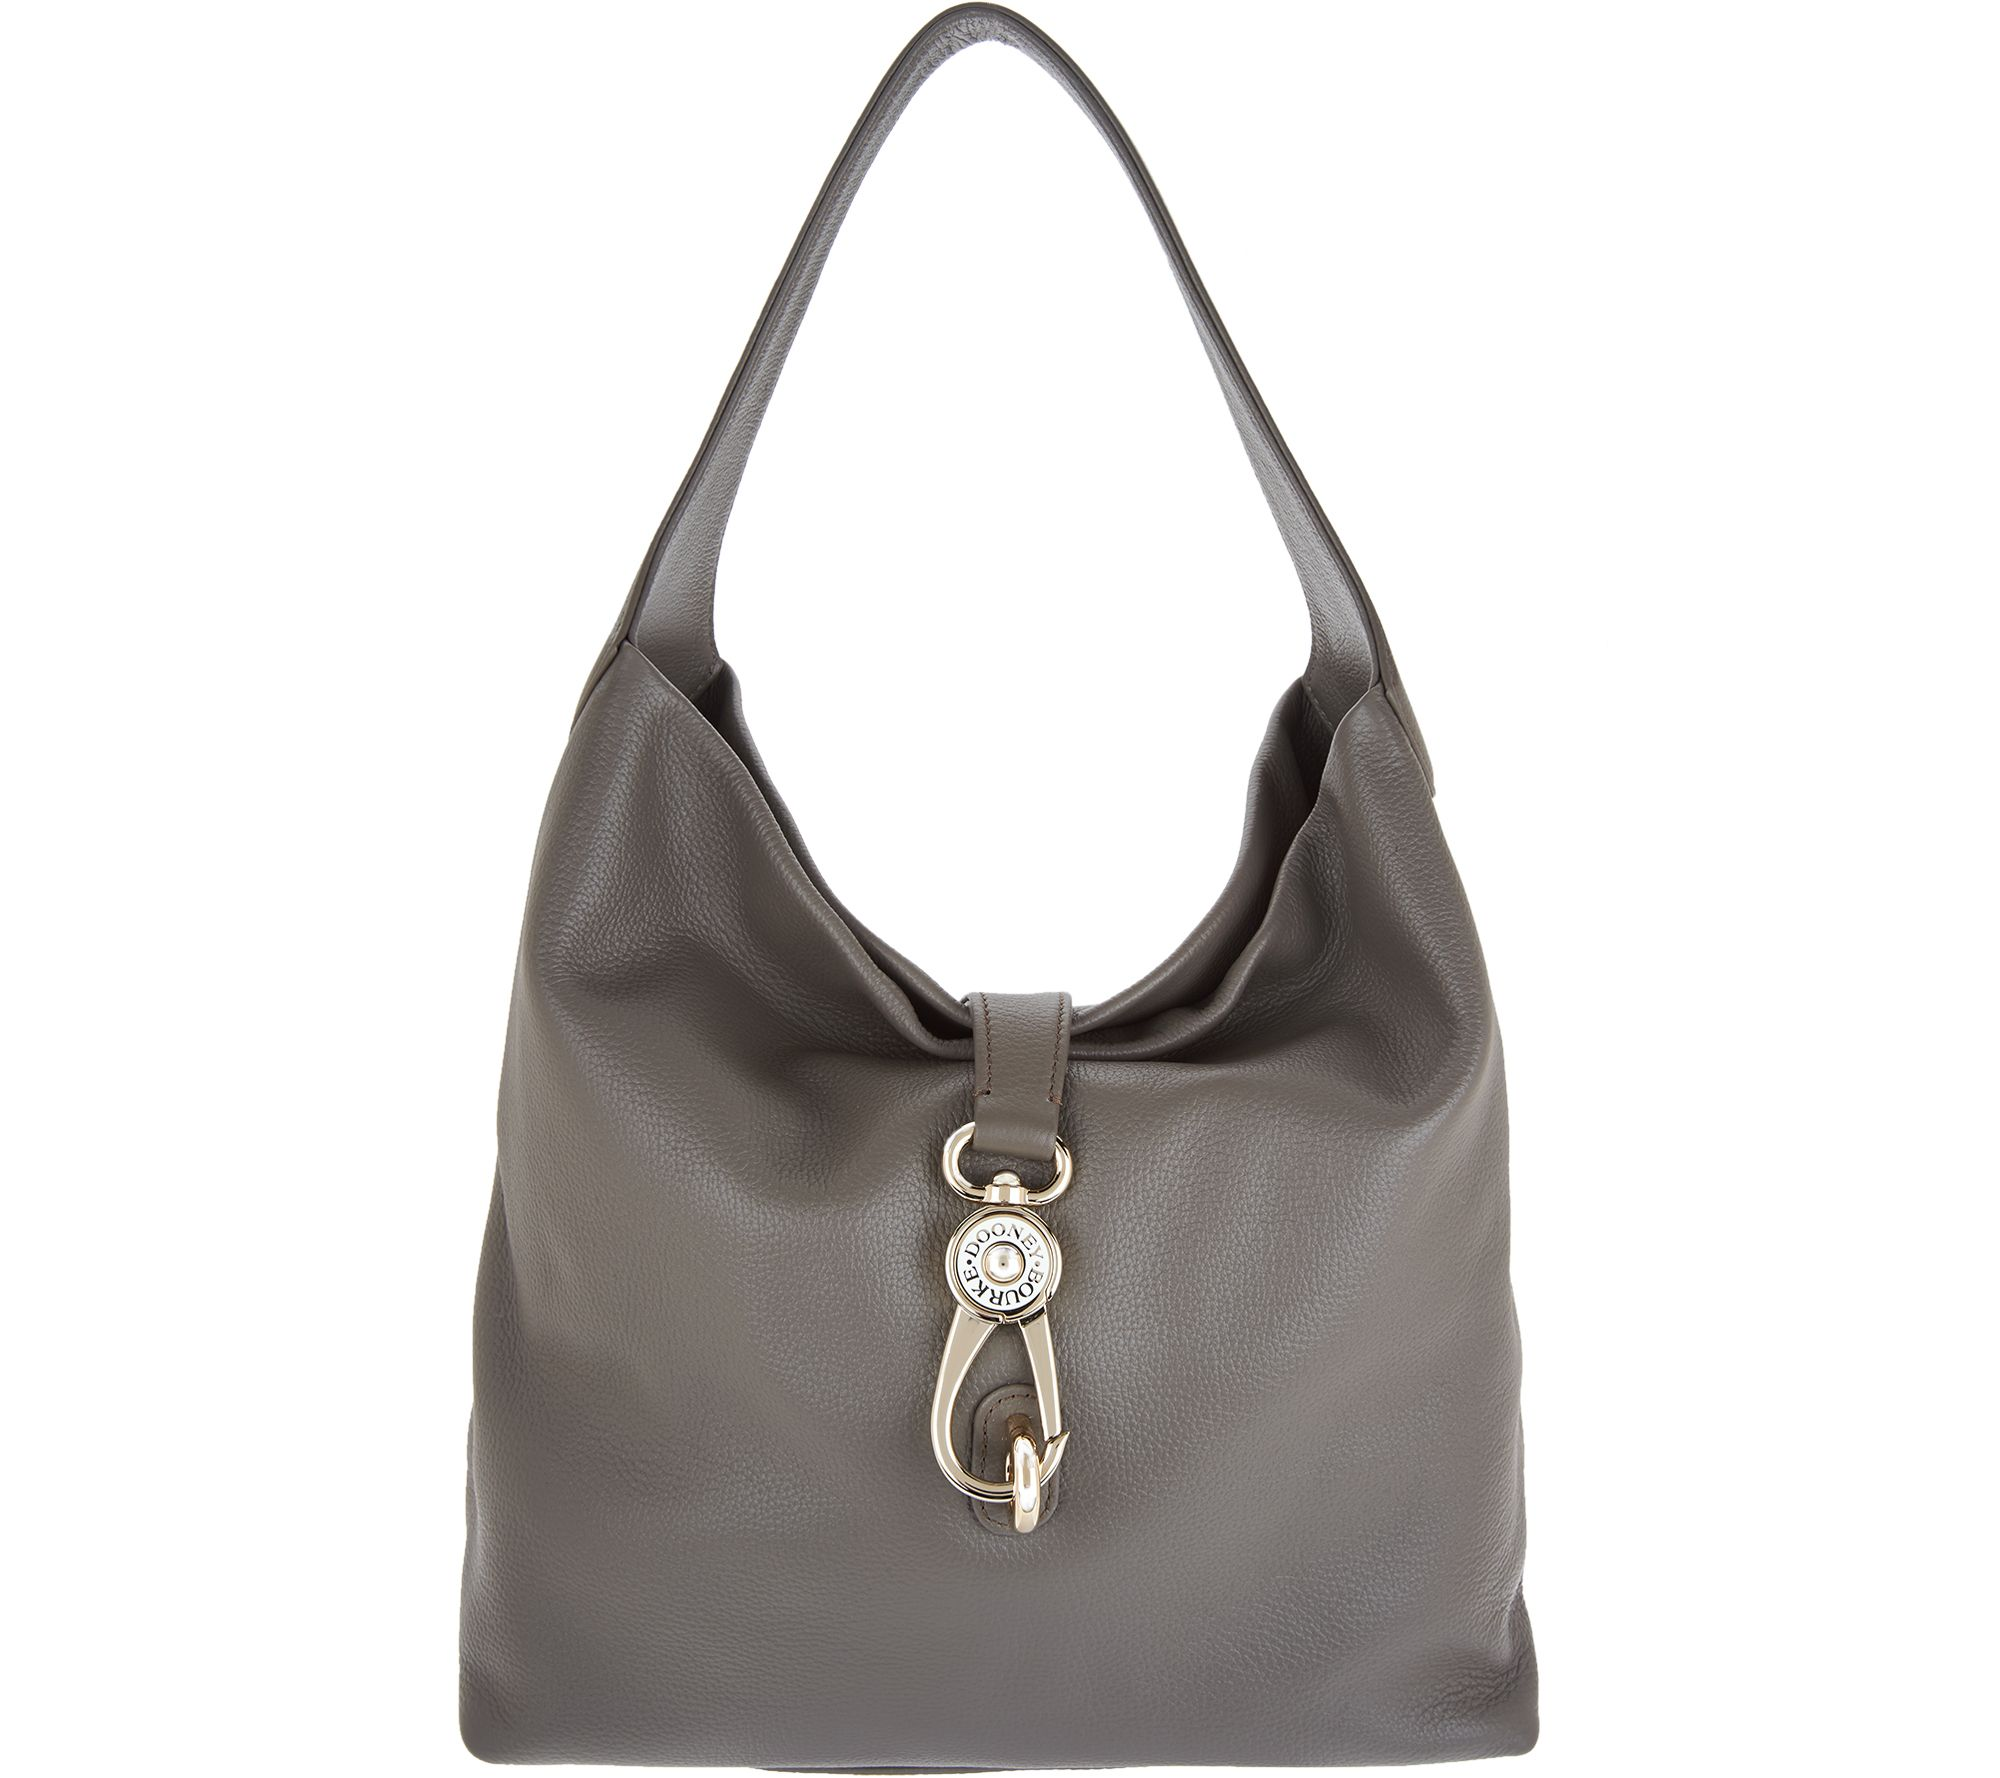 Dooney & Bourke Belvedere Leather Hobo with Logo Lock - Page 1 ...